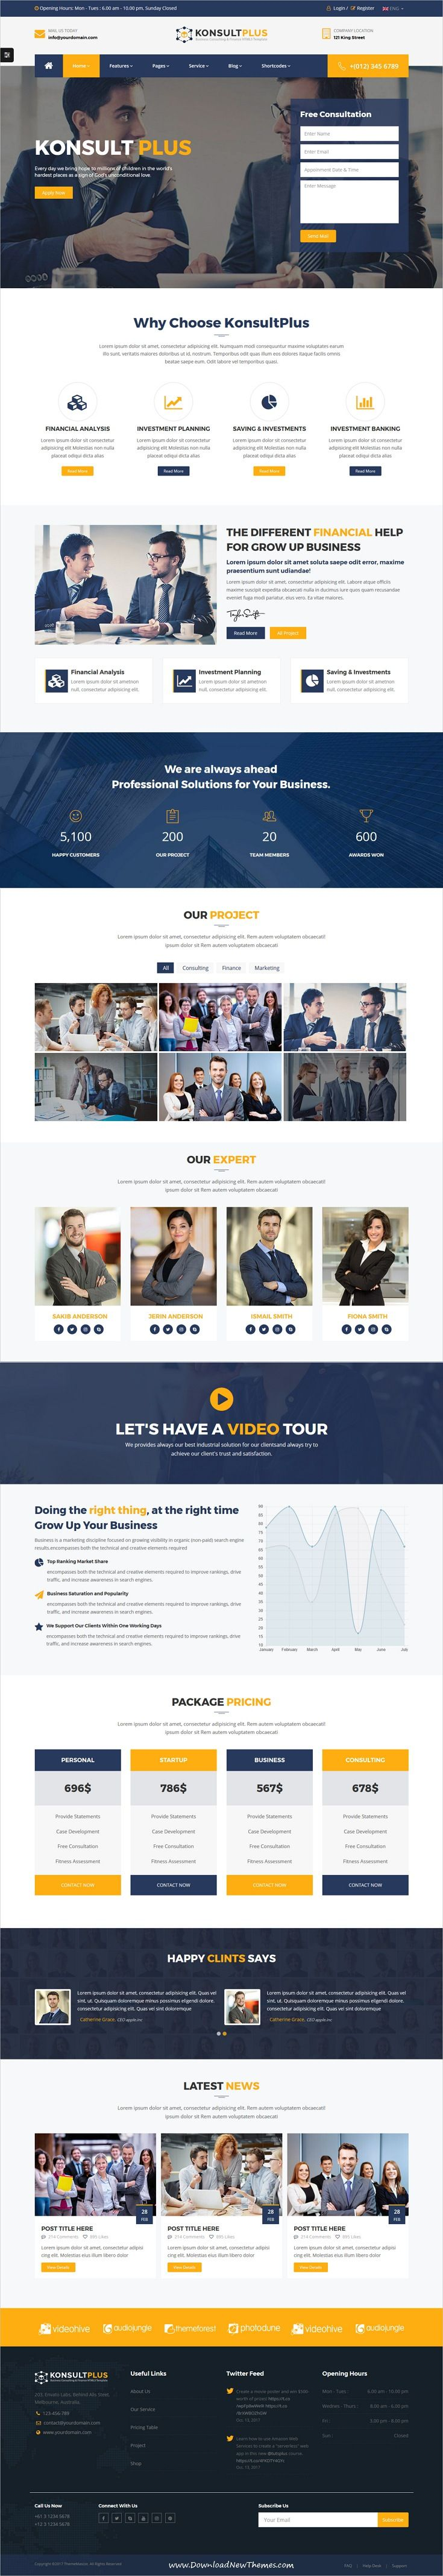 Consulting Finance Business - Consulting Plus